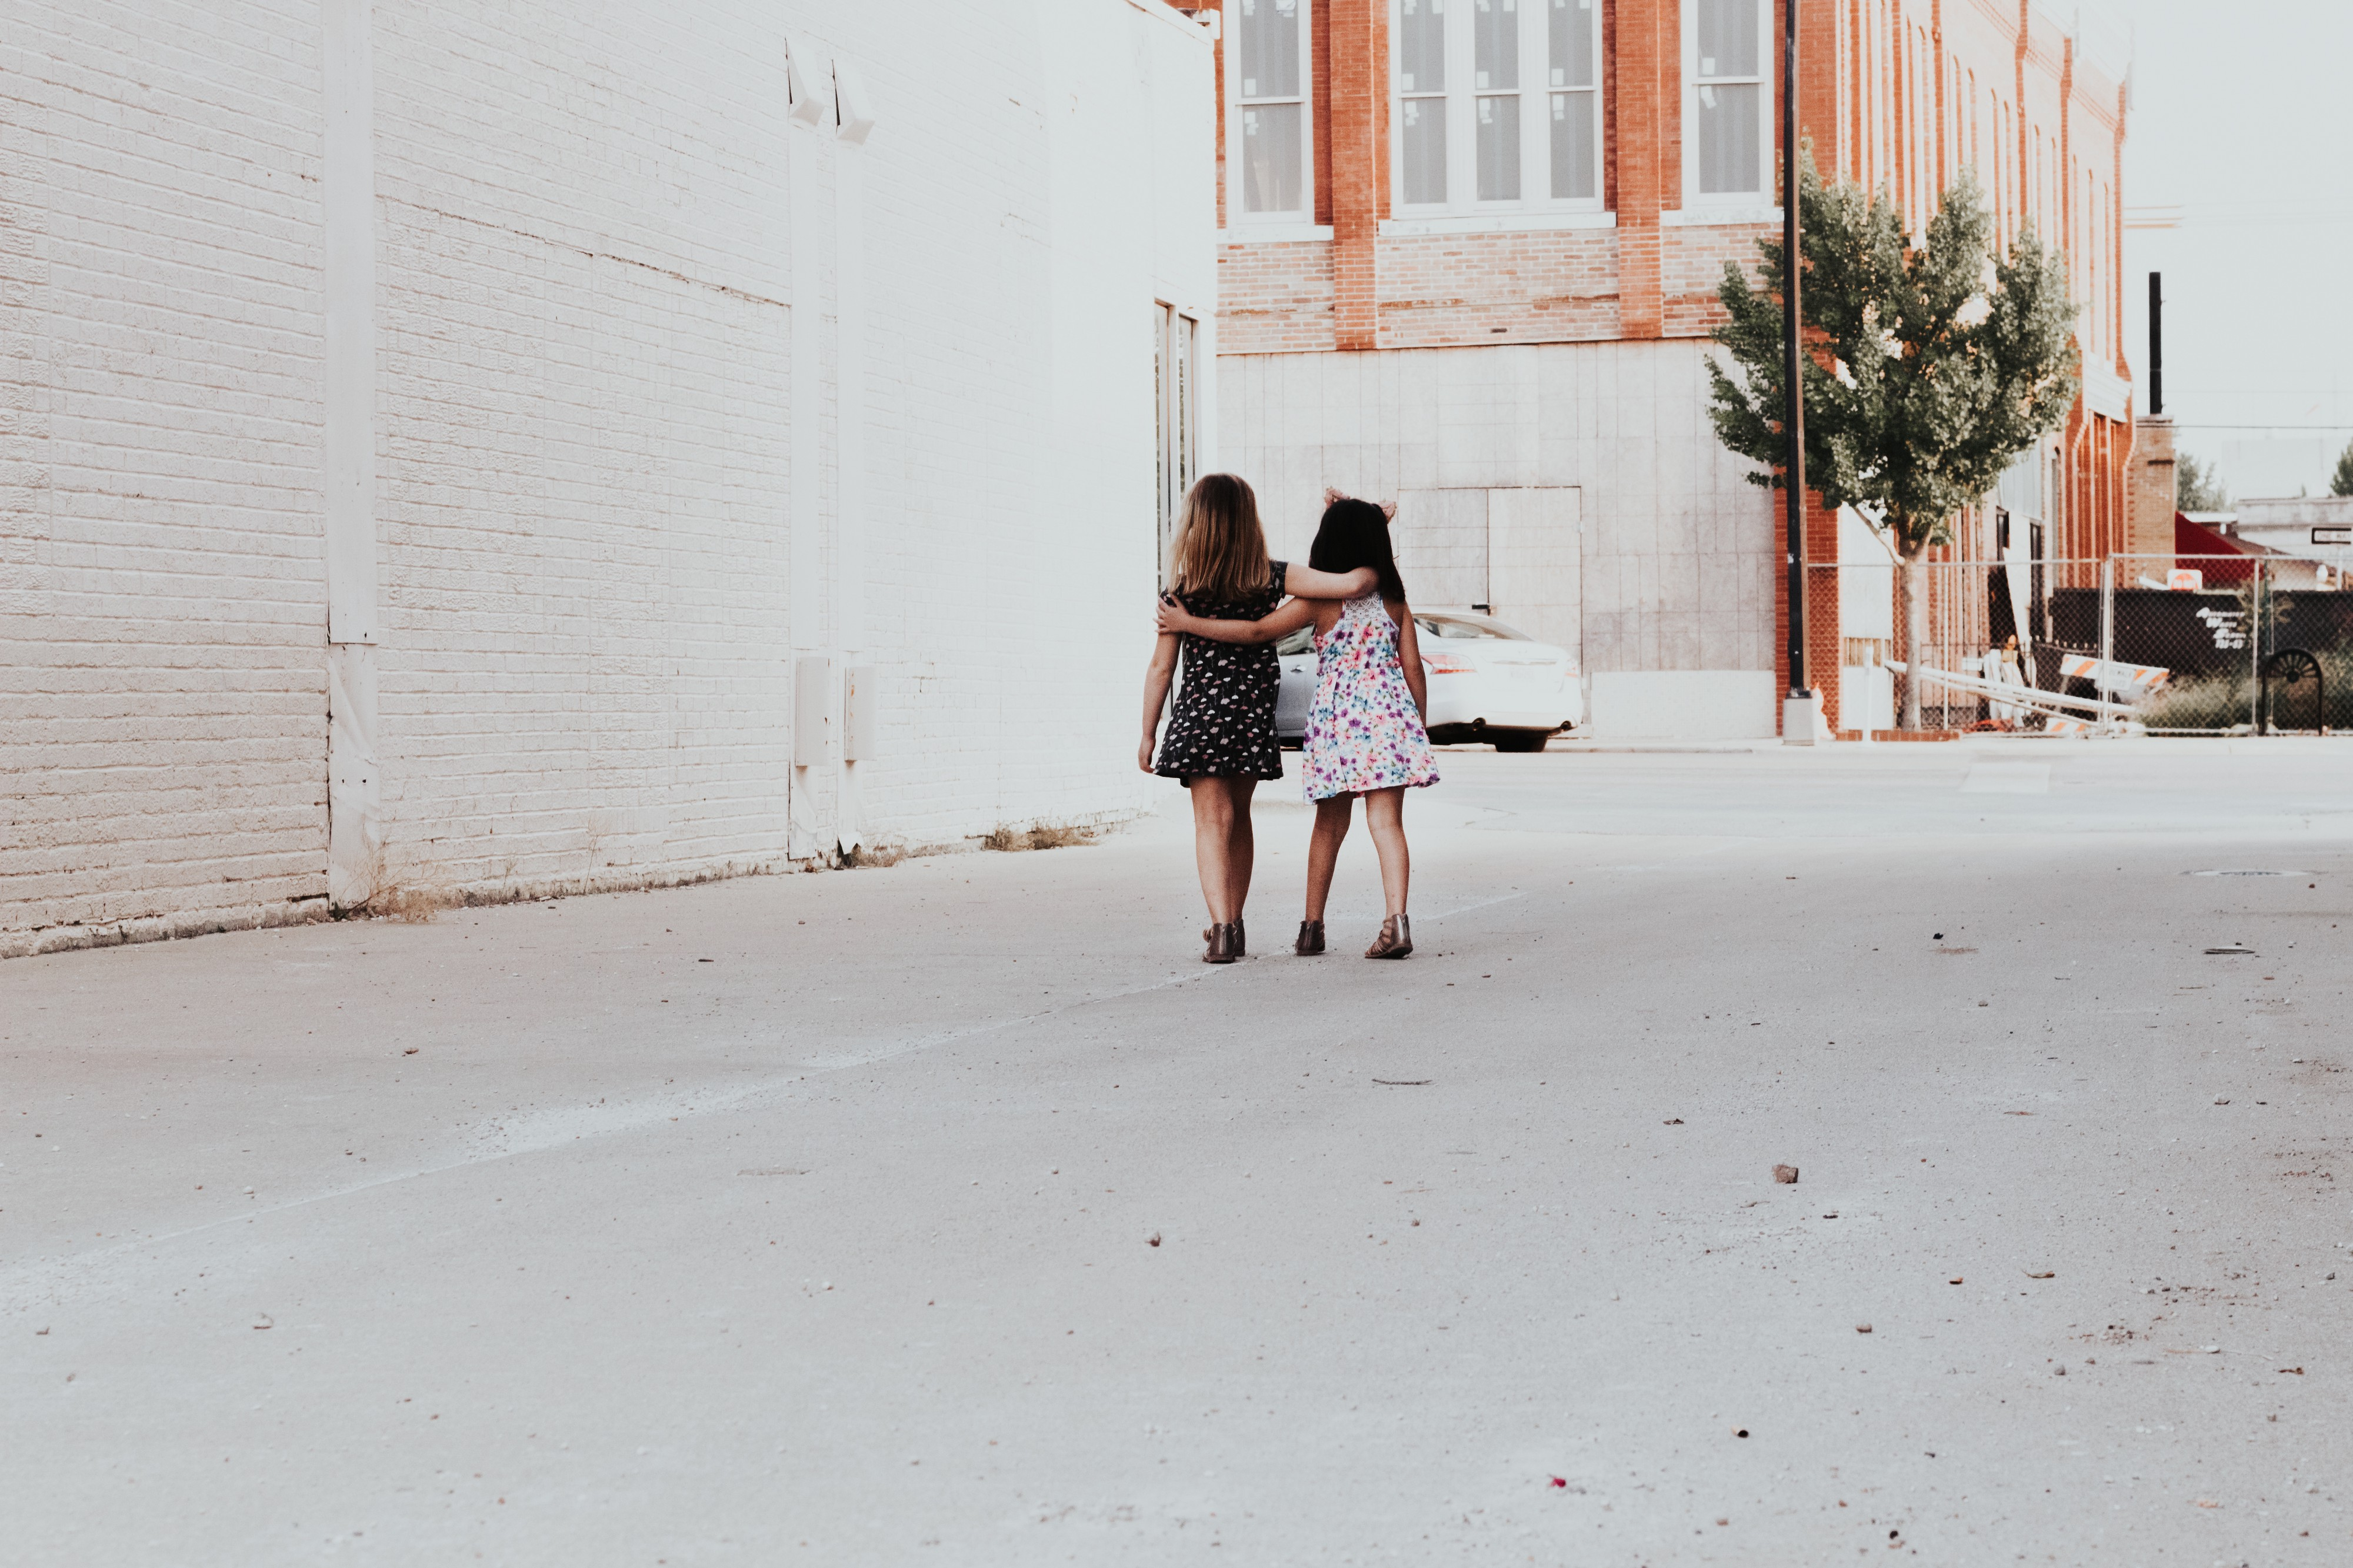 Two little girls in cute dresses walk arm and arm down a city alley.